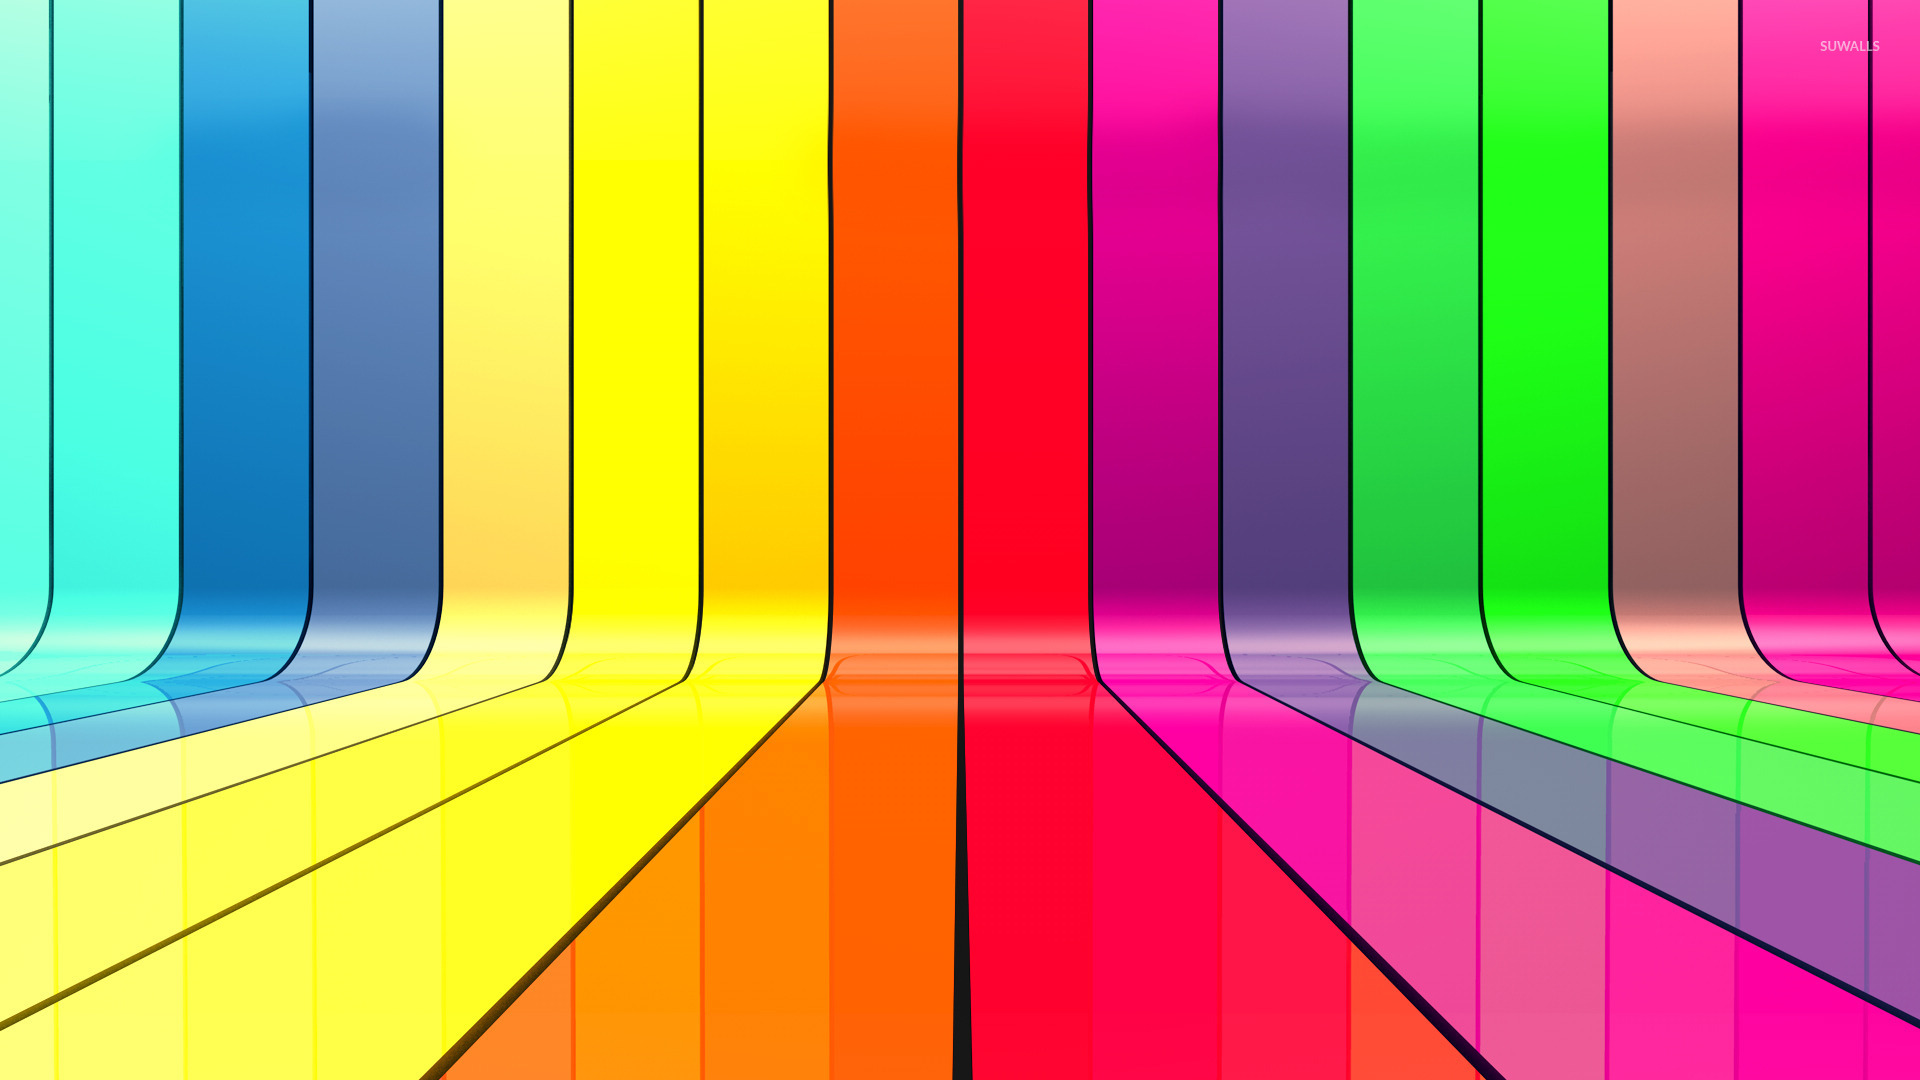 Rainbow bars wallpaper Abstract wallpapers 17155